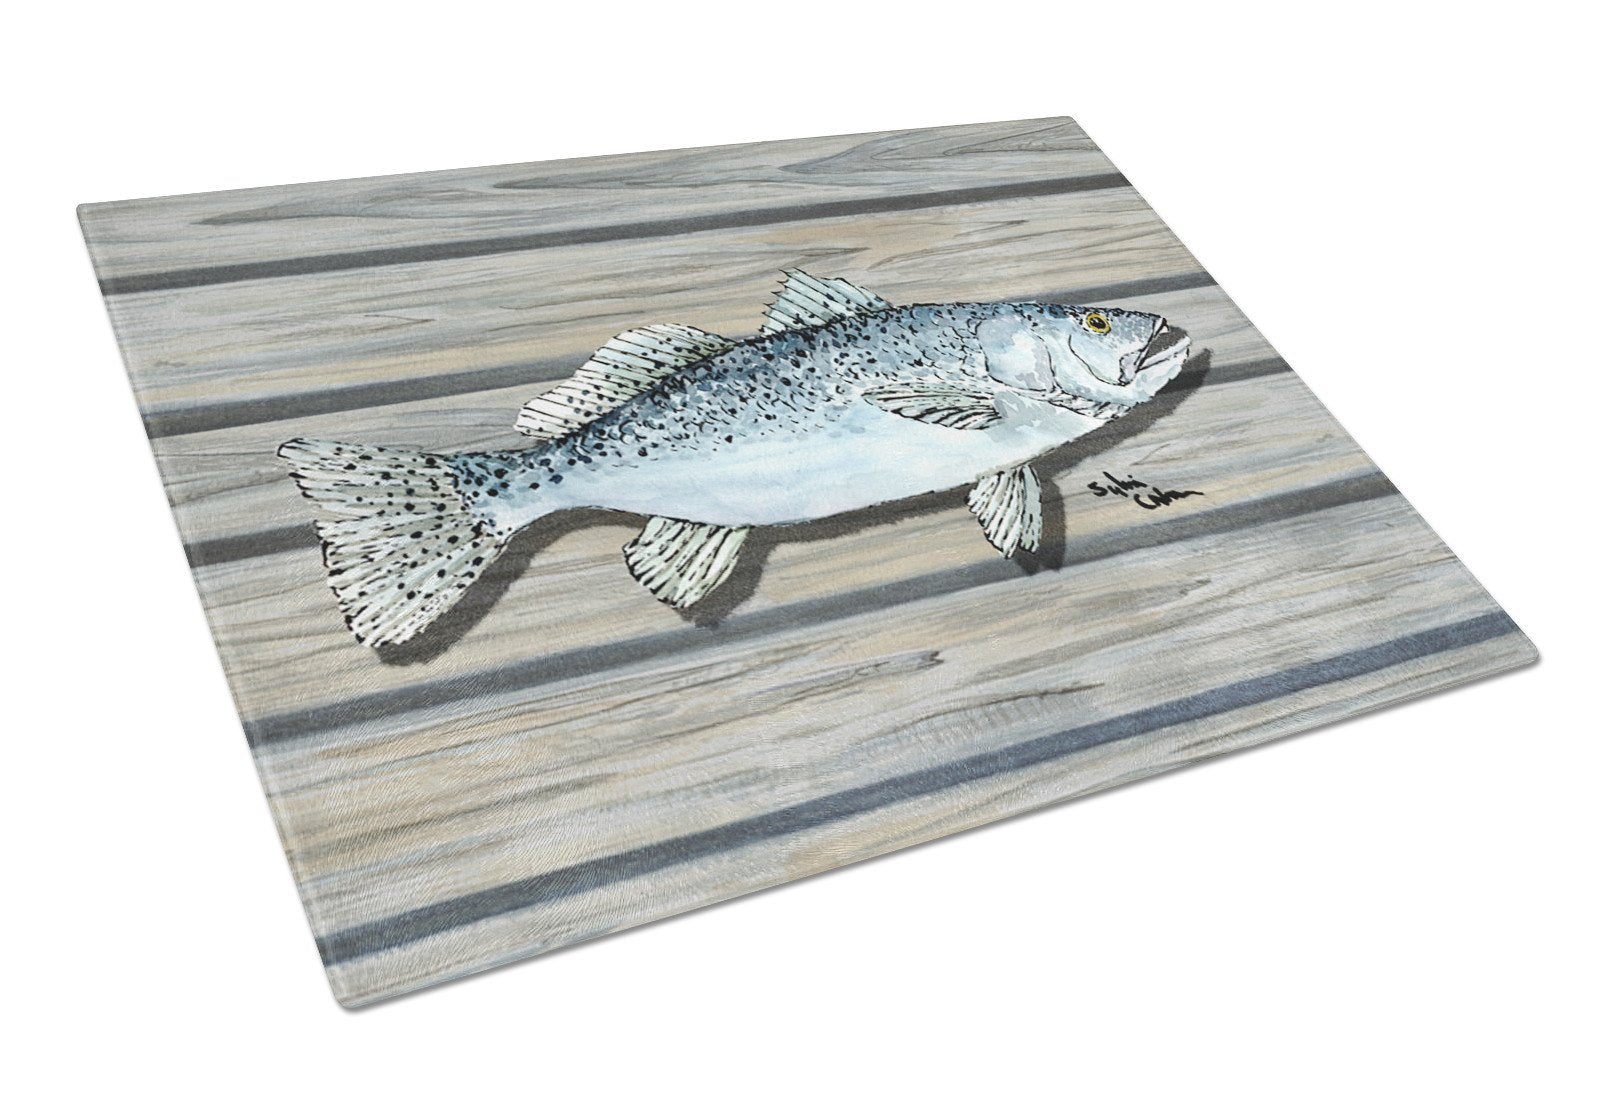 Speckled Trout on the wharf Glass Cutting Board by Caroline's Treasures